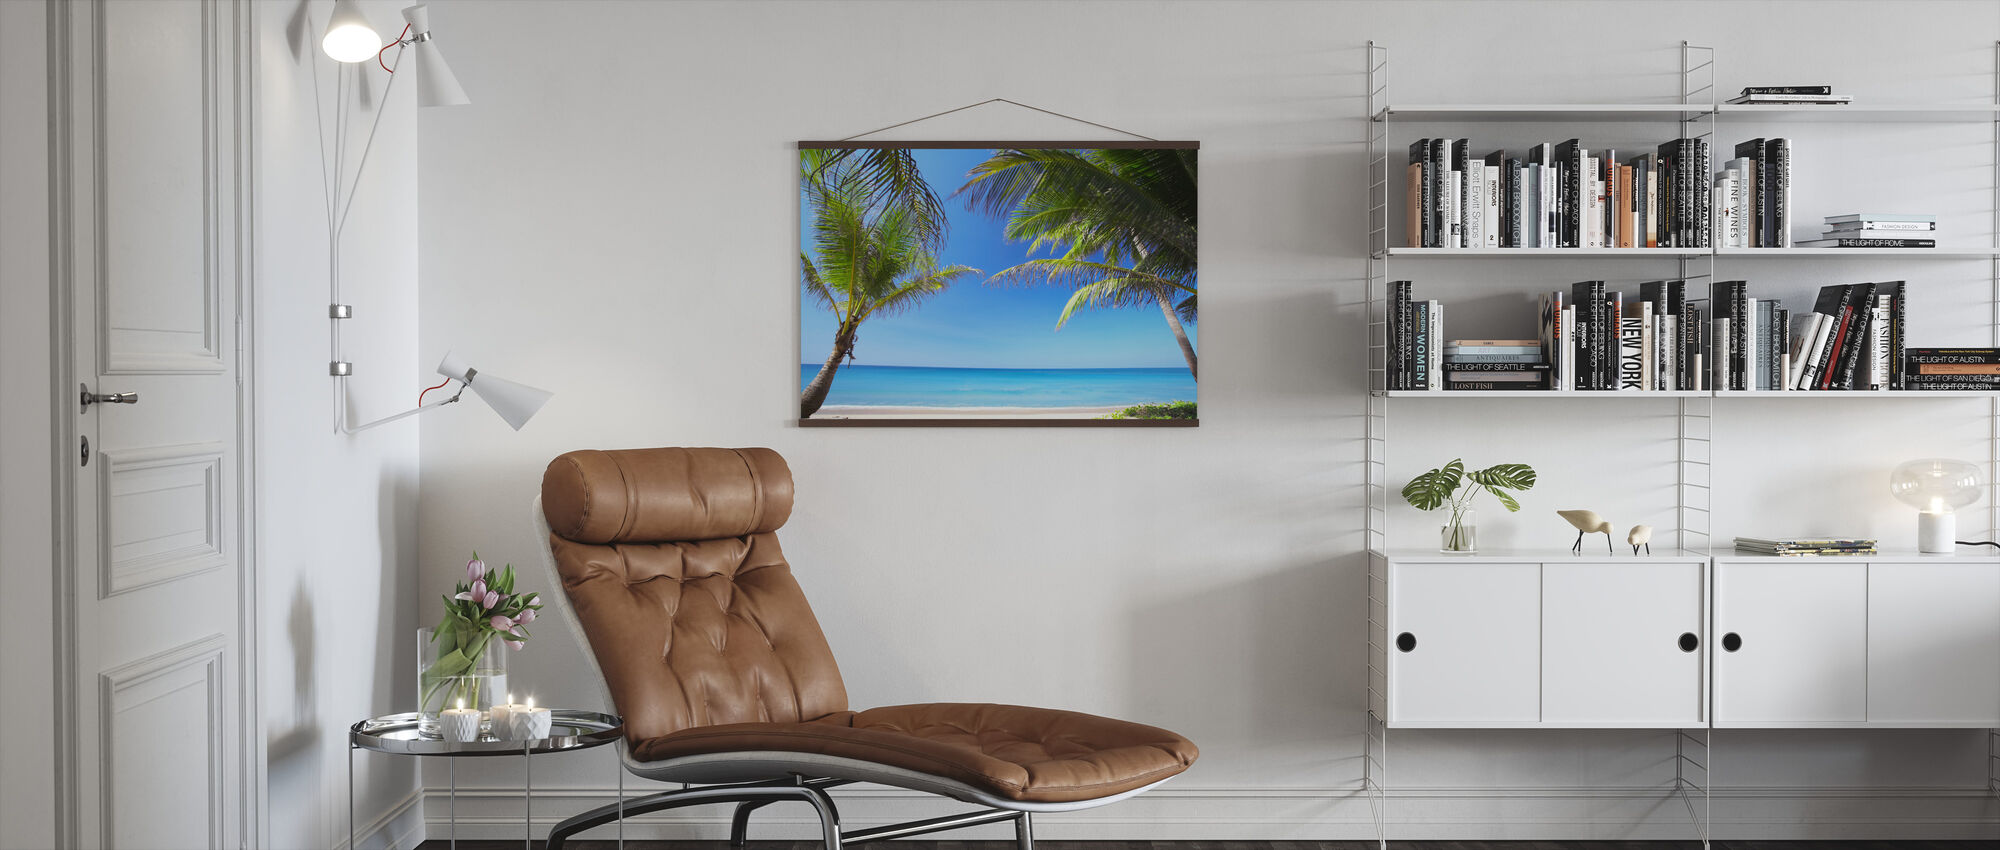 Relaxation - Poster - Living Room